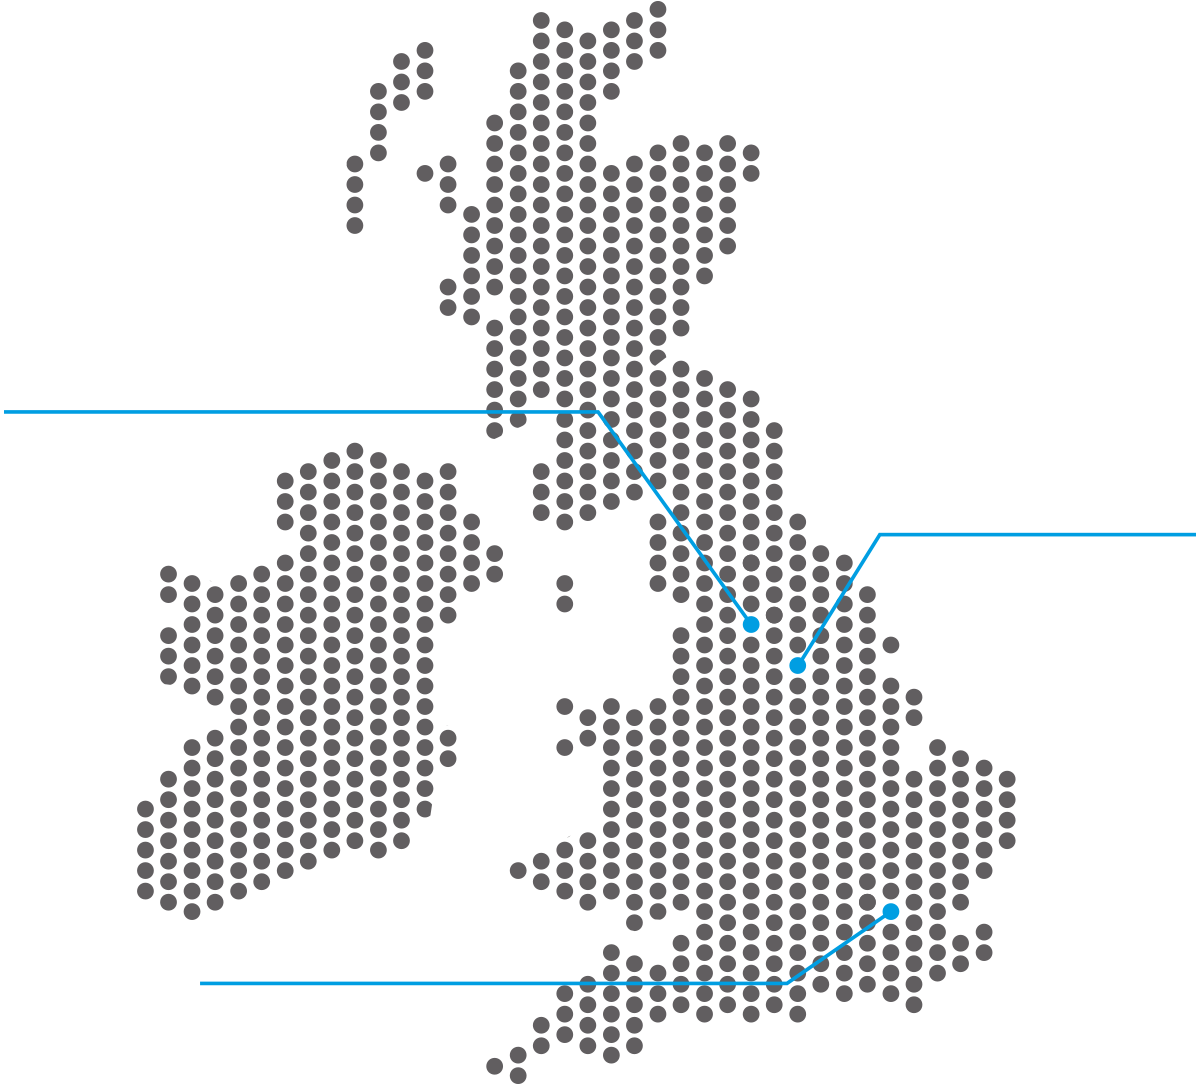 Bowman Riley Map